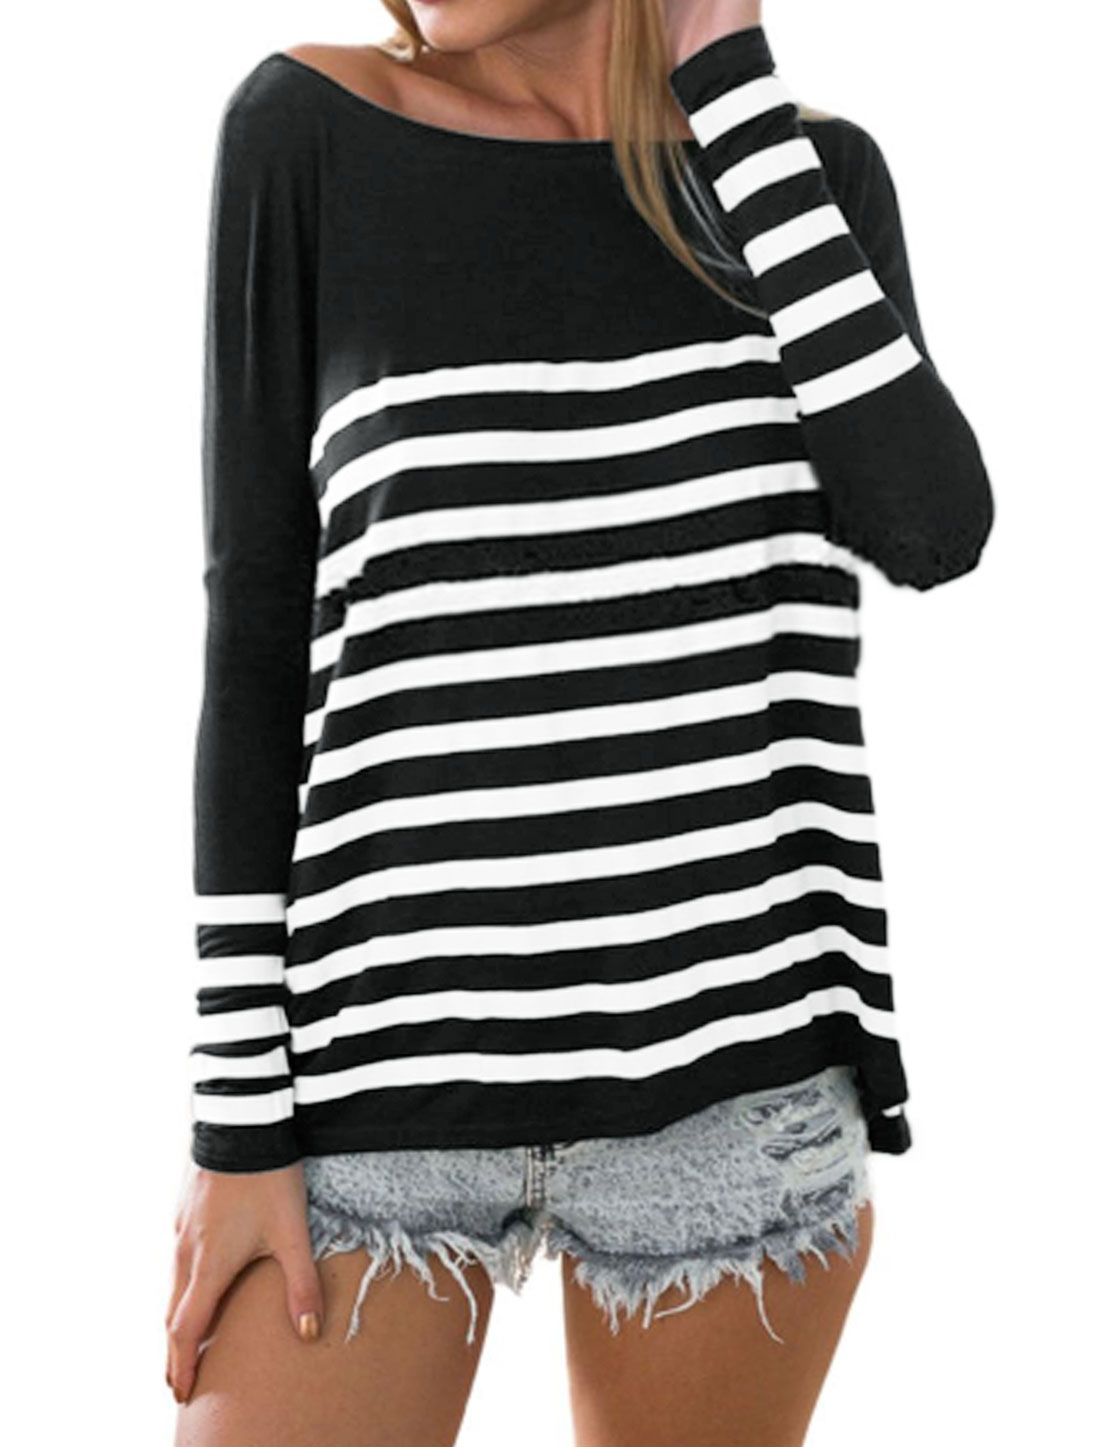 Women Boat Neck Dolman Sleeves Stripes Loose T-Shirt Black XS